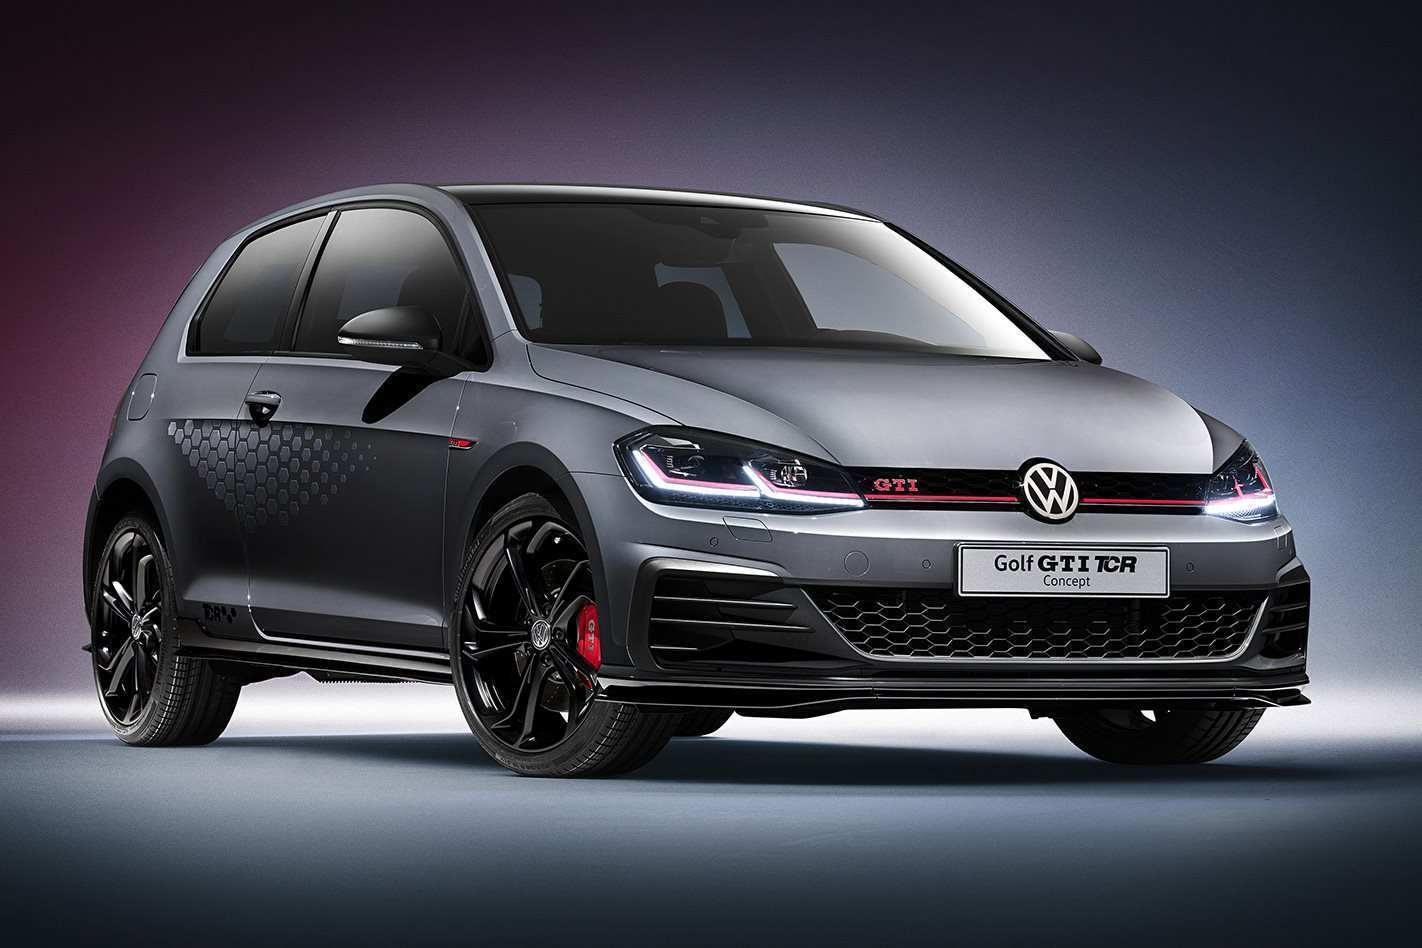 46 All New Volkswagen Golf Gti 2020 Configurations